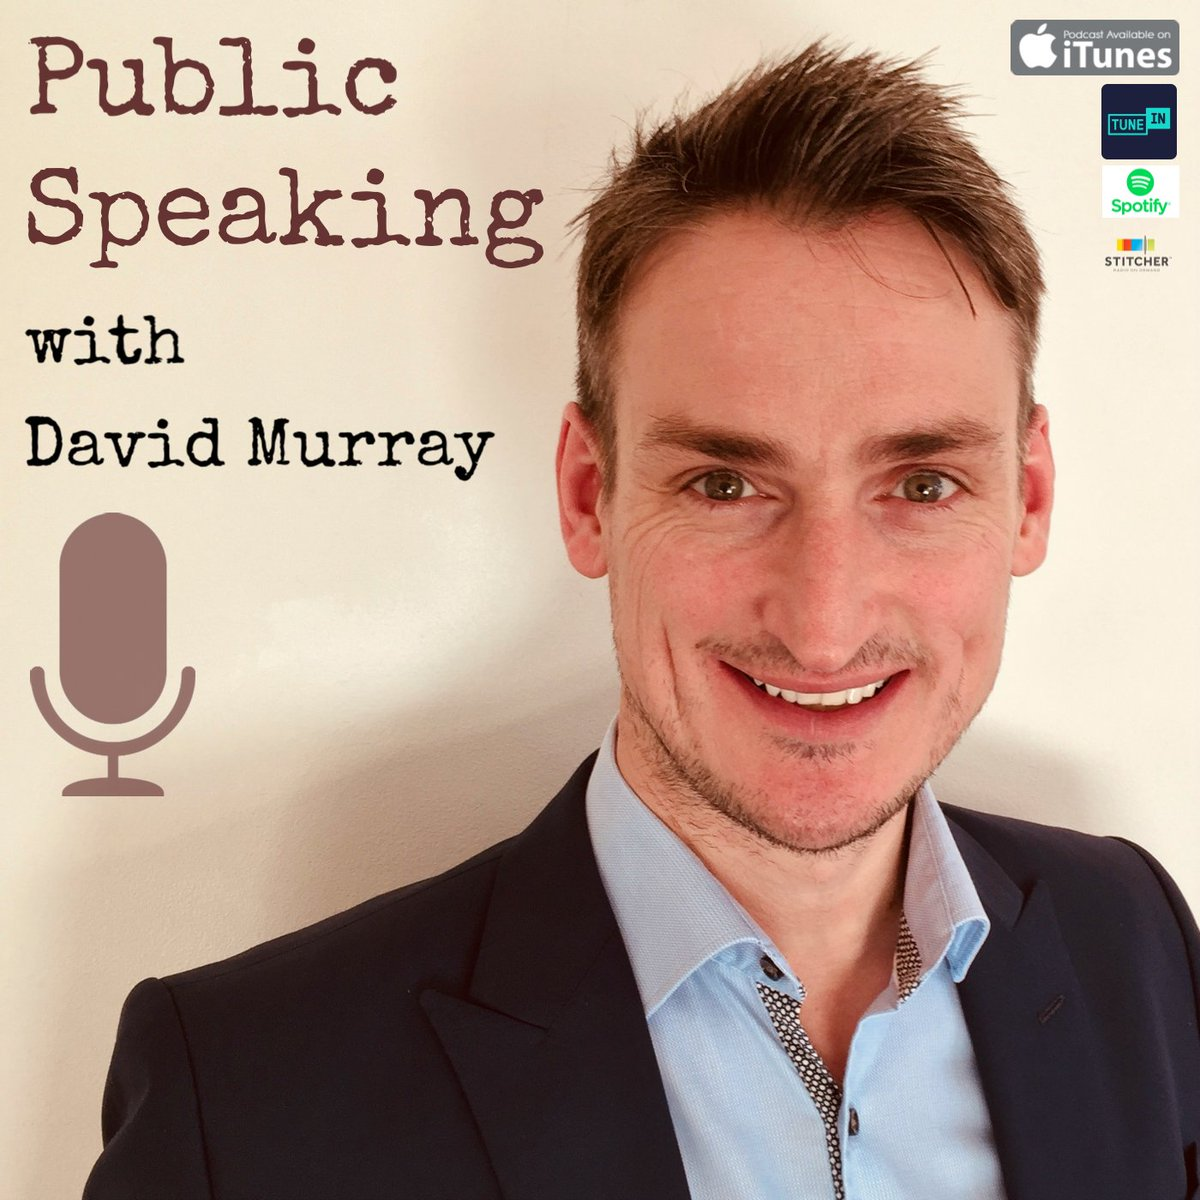 """Delivering a speech or presentation this week? Share your message with confidence and flair by listening to the #Publicspeaking with David Murray podcast.  How to remove those """"erms"""" and """"ums""""! http://ow.ly/MKnj50yzjGT  #communicatewithconfidence #presentationskillspic.twitter.com/iw1MMJw2eZ"""